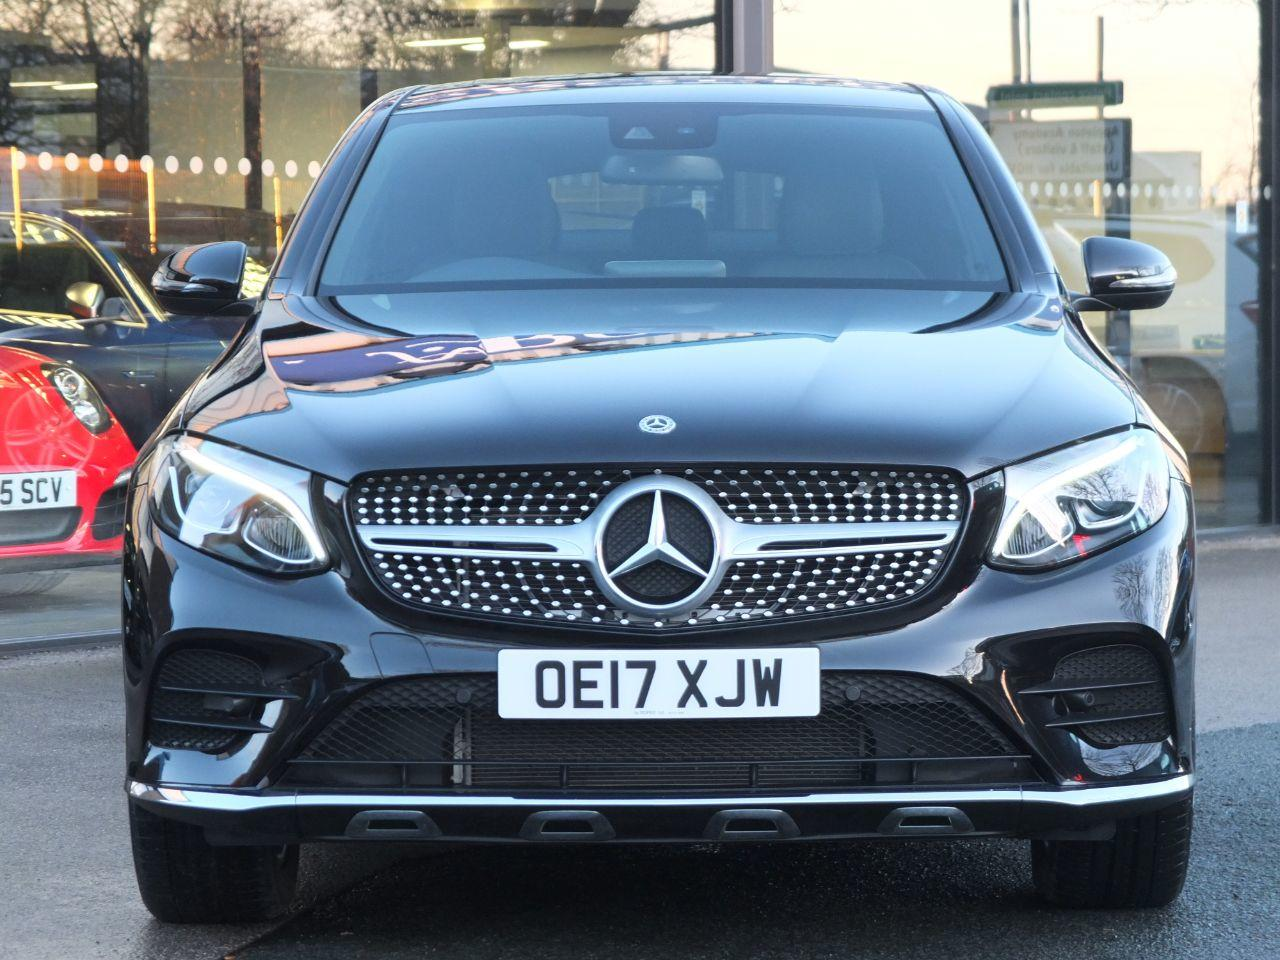 Mercedes-Benz GLC Coupe 3.0 350d 4Matic AMG Line Premium Plus 9G-Tronic Coupe Diesel Obsidian Black Metallic